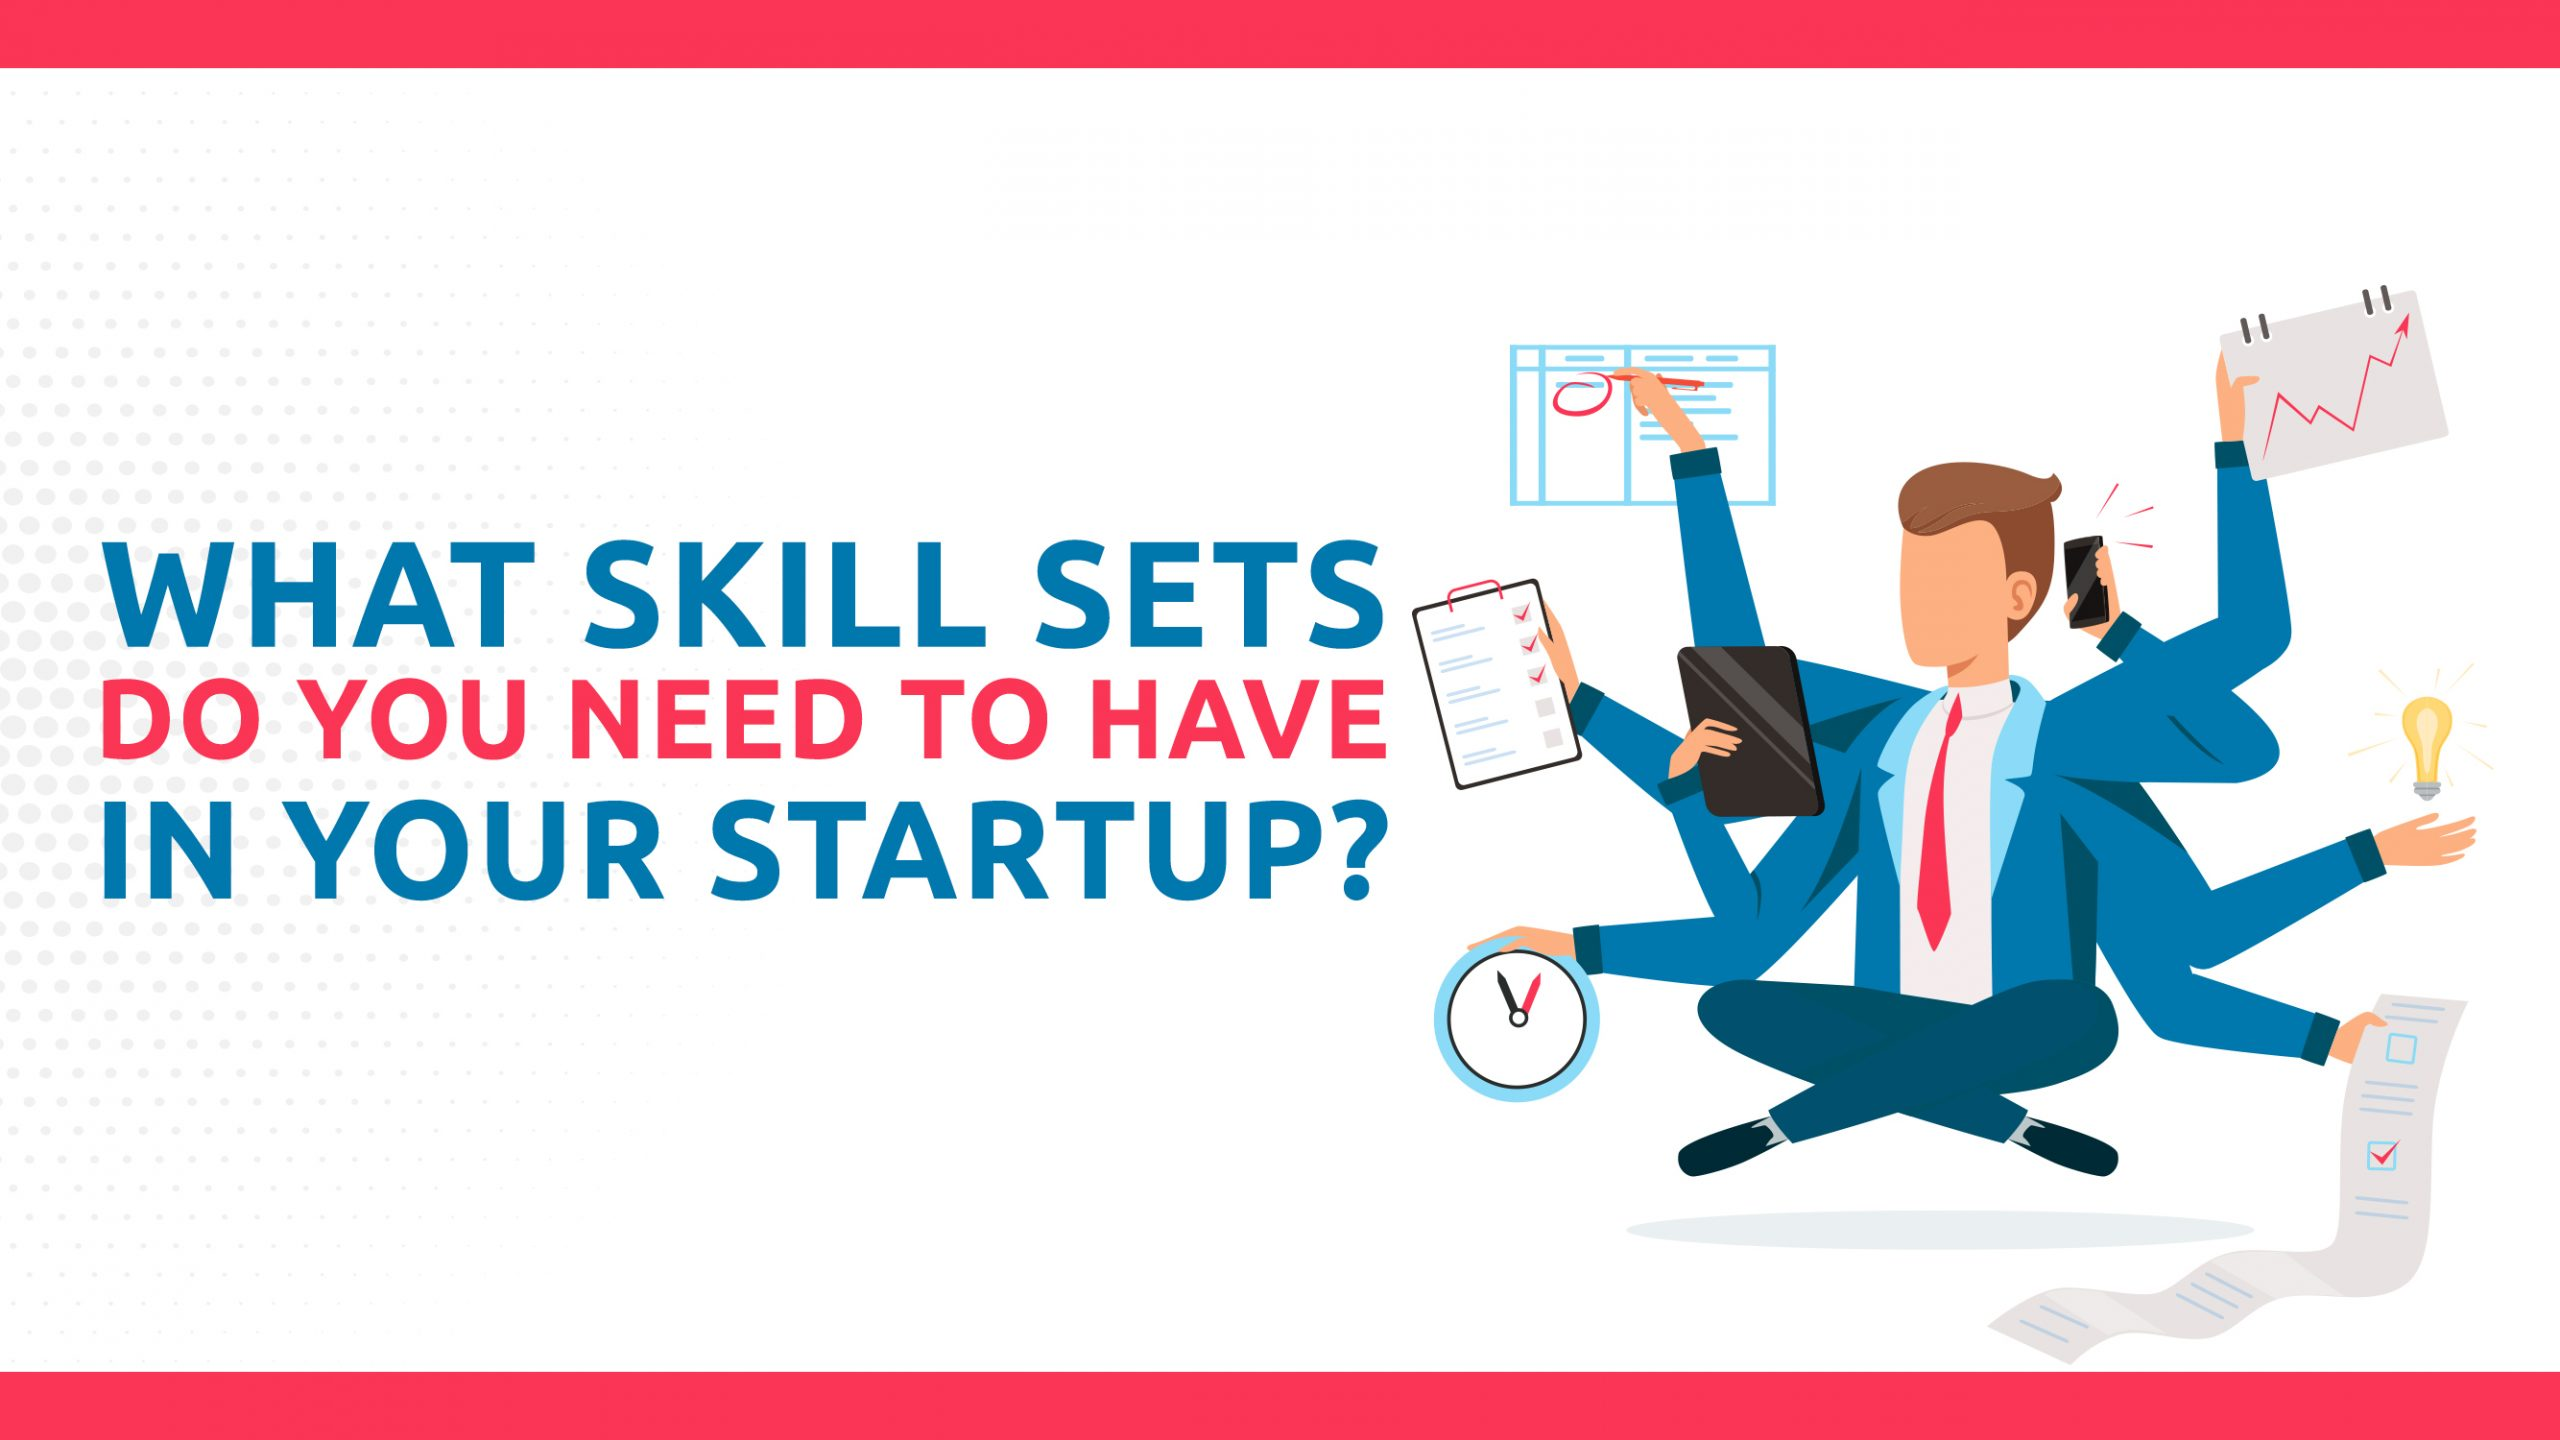 What Skill Sets Do You Need To Have In Your Startup?